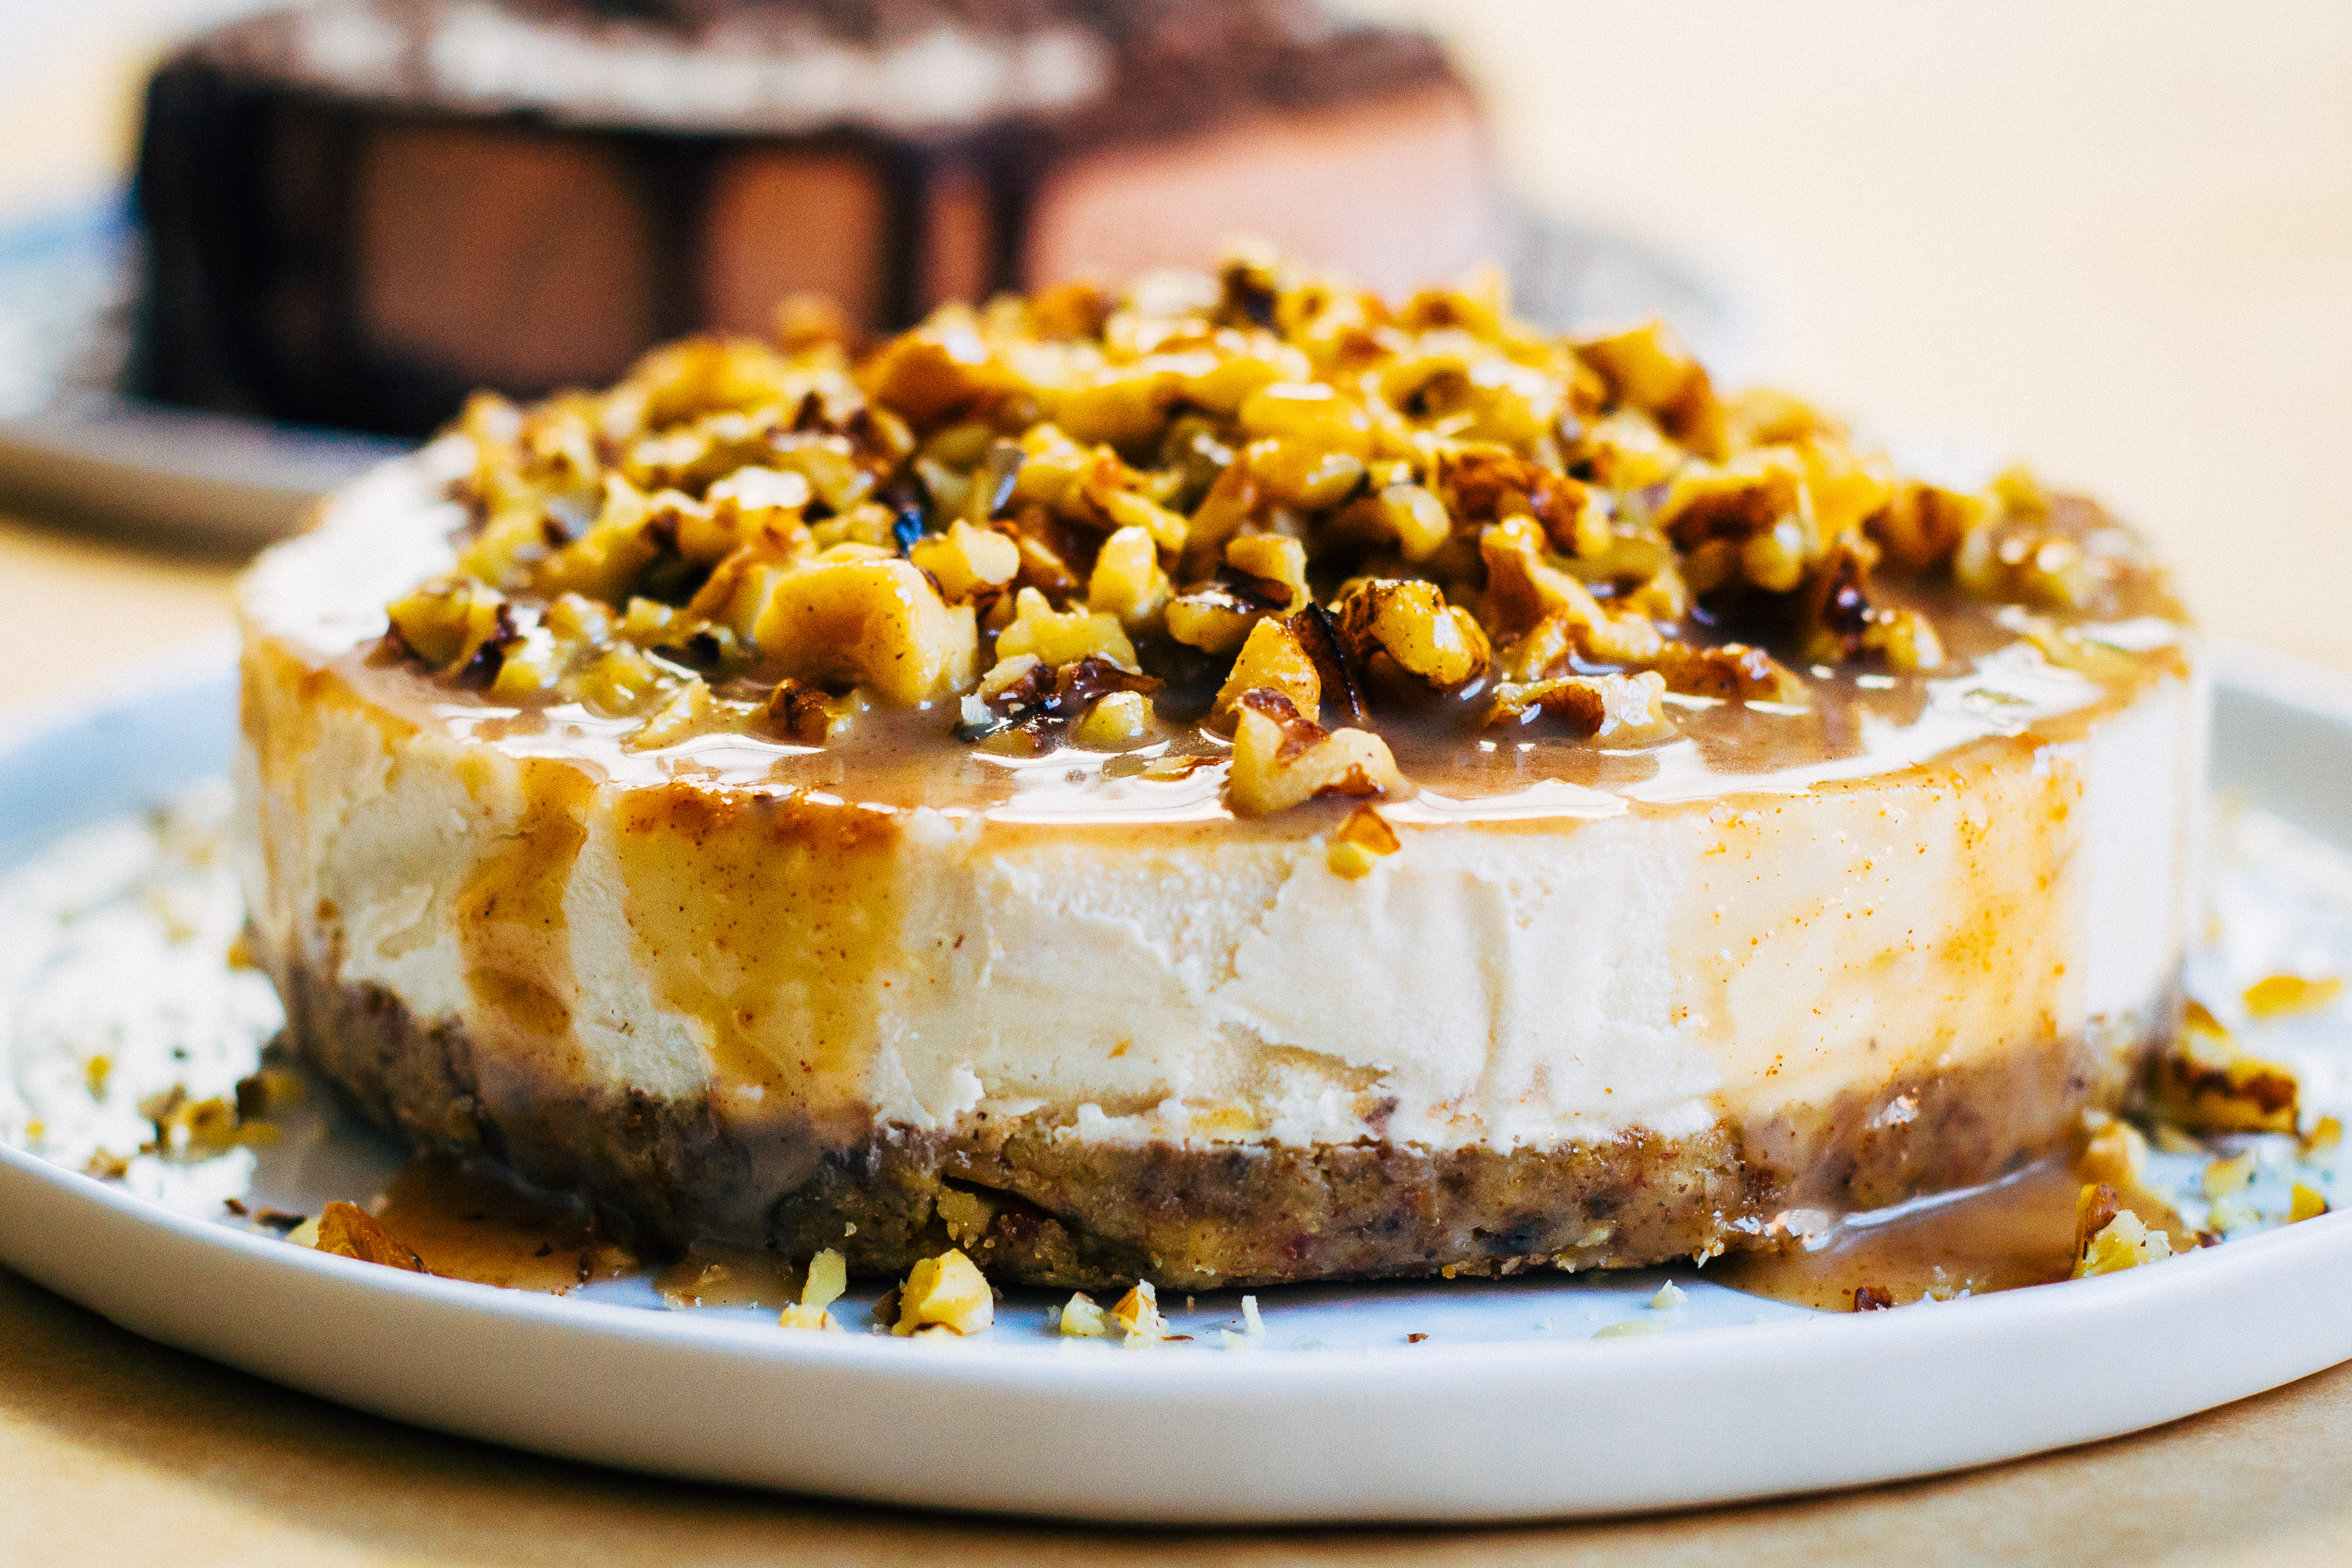 Birthday Cake Cheesecake Foods 10 Insanely Delicious Cheesecakes You Wont Believe Are Vegan